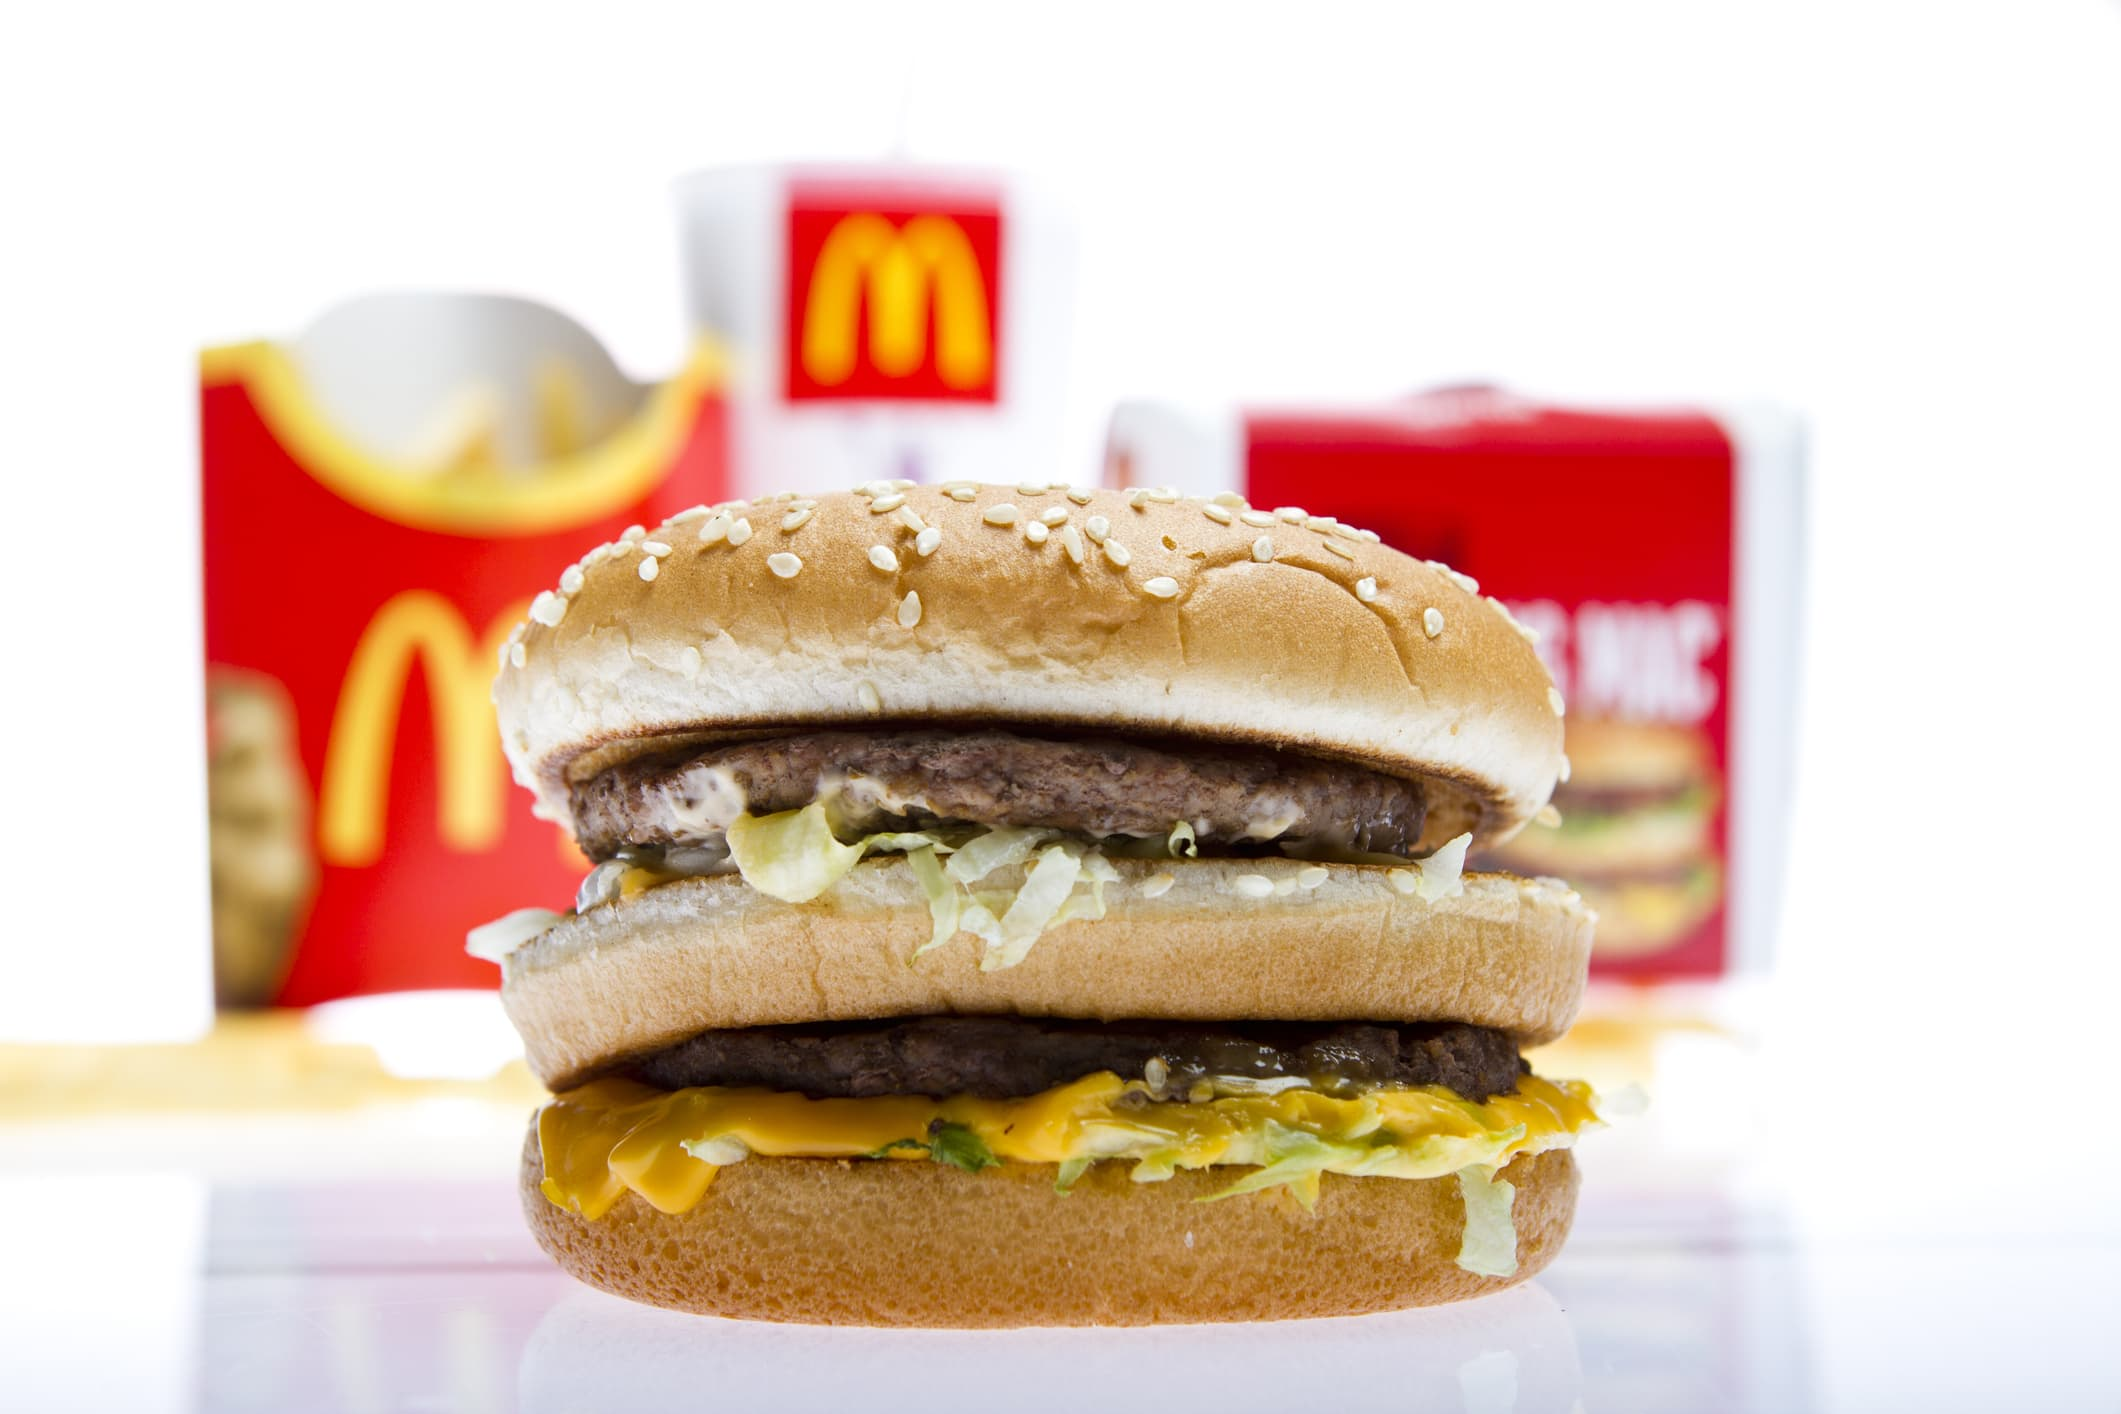 Wall Street analysts say invest in these top stocks in 2020 including McDonald's & Facebook